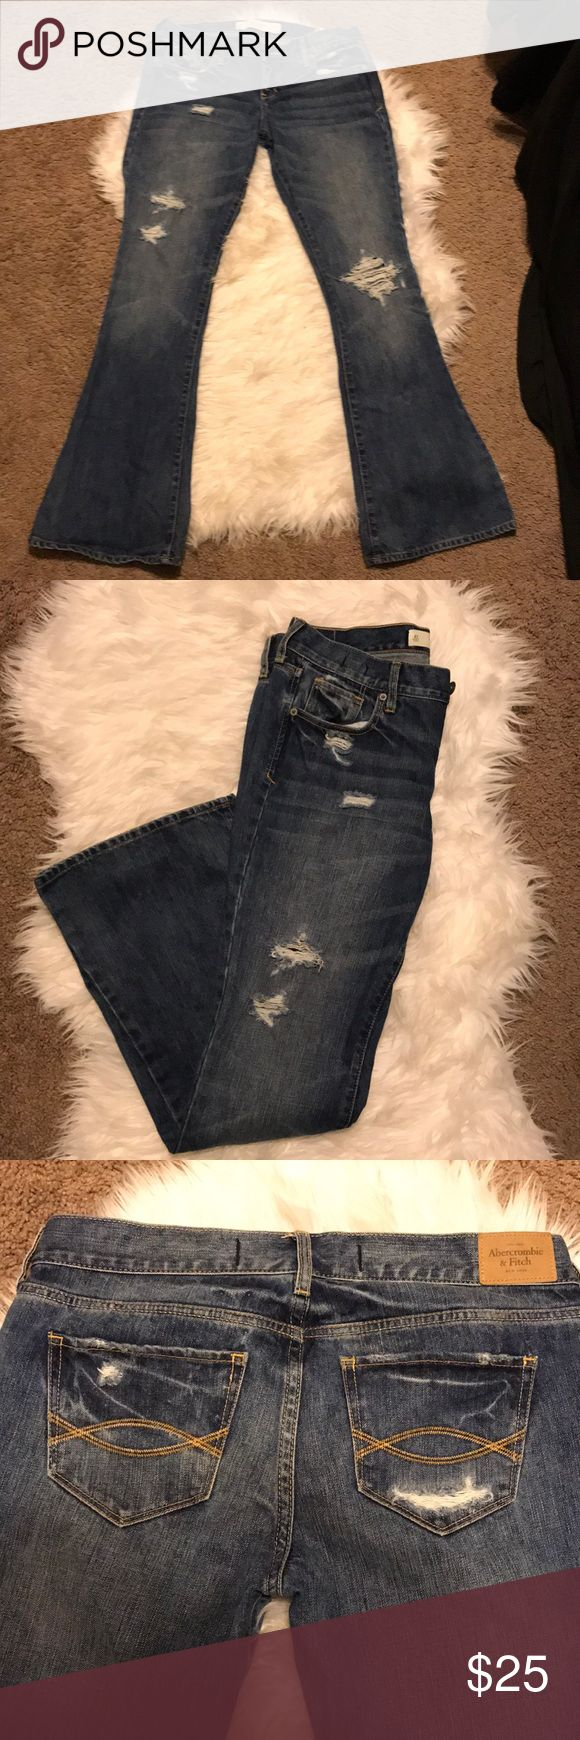 Abercrombie and Fitch Jeans Size 4S Abercrombie and Fitch boot cut pants. Worn once Abercrombie & Fitch Jeans Boot Cut